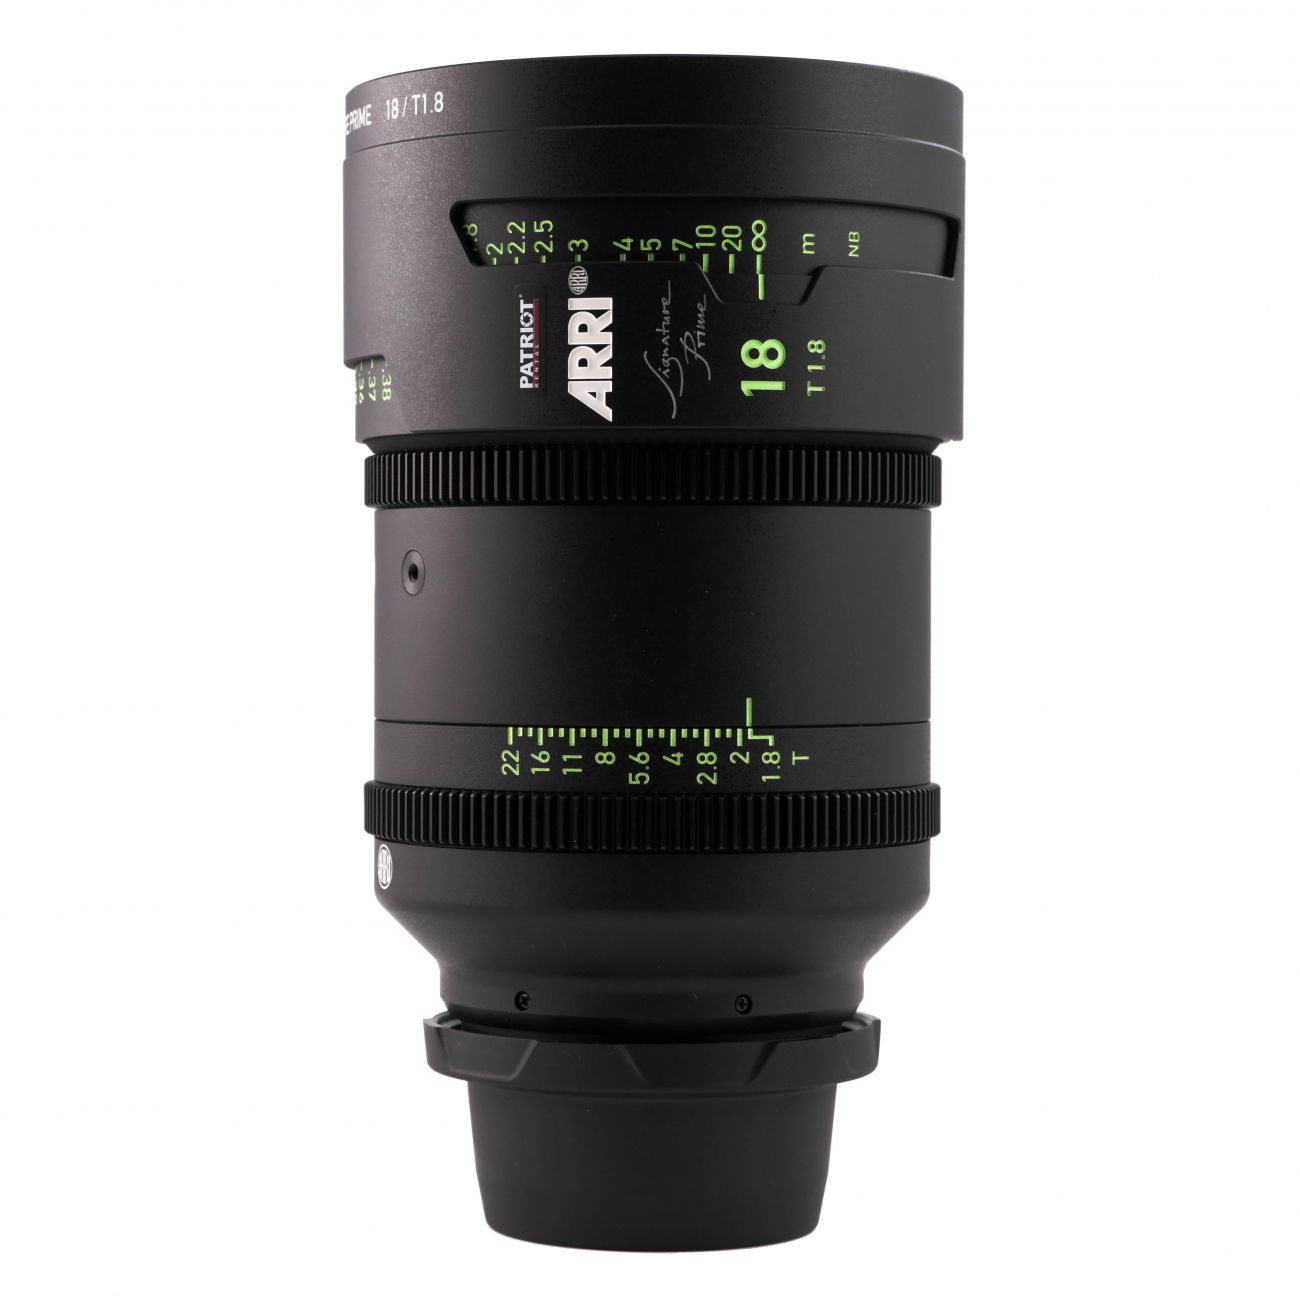 18mm ARRI SIGNATURE PRIME Lens T1.8